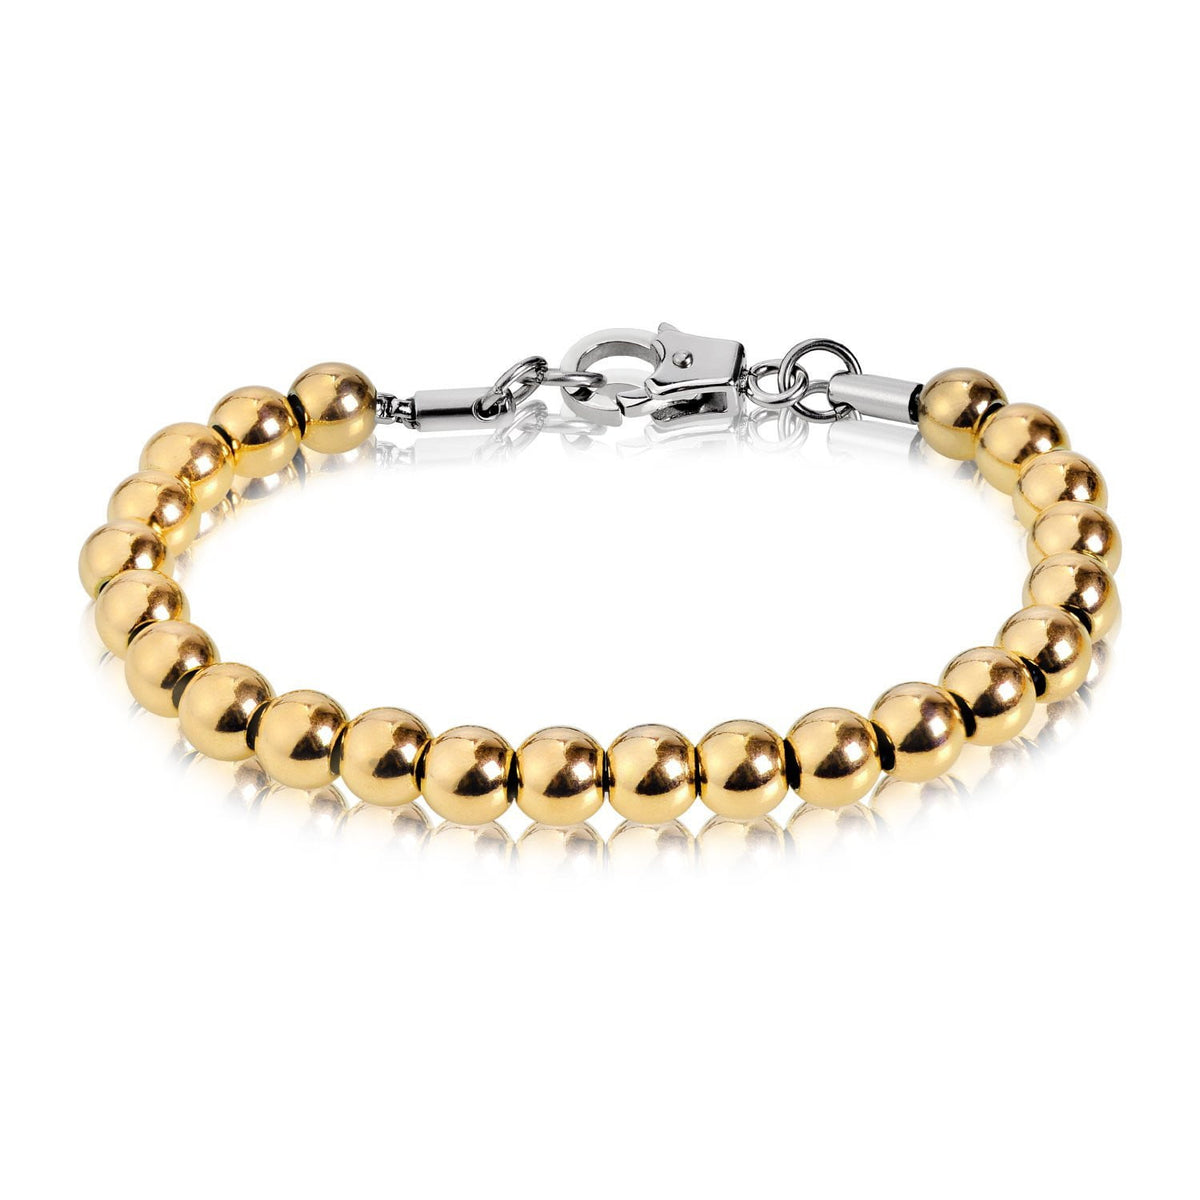 A.R.Z Steel - 7mm Steel Gold Bead Bracelet